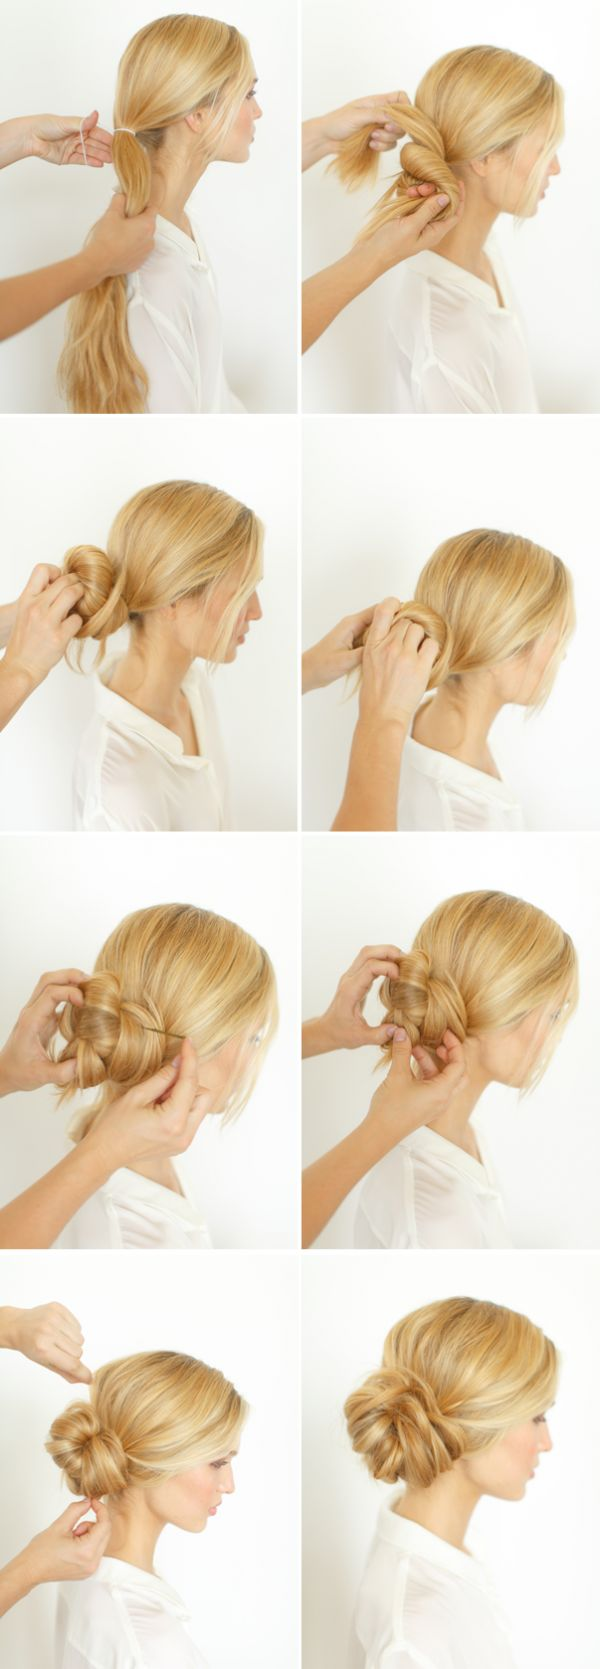 DIY Knotted Bun Wedding Hairstyle via oncewed.com